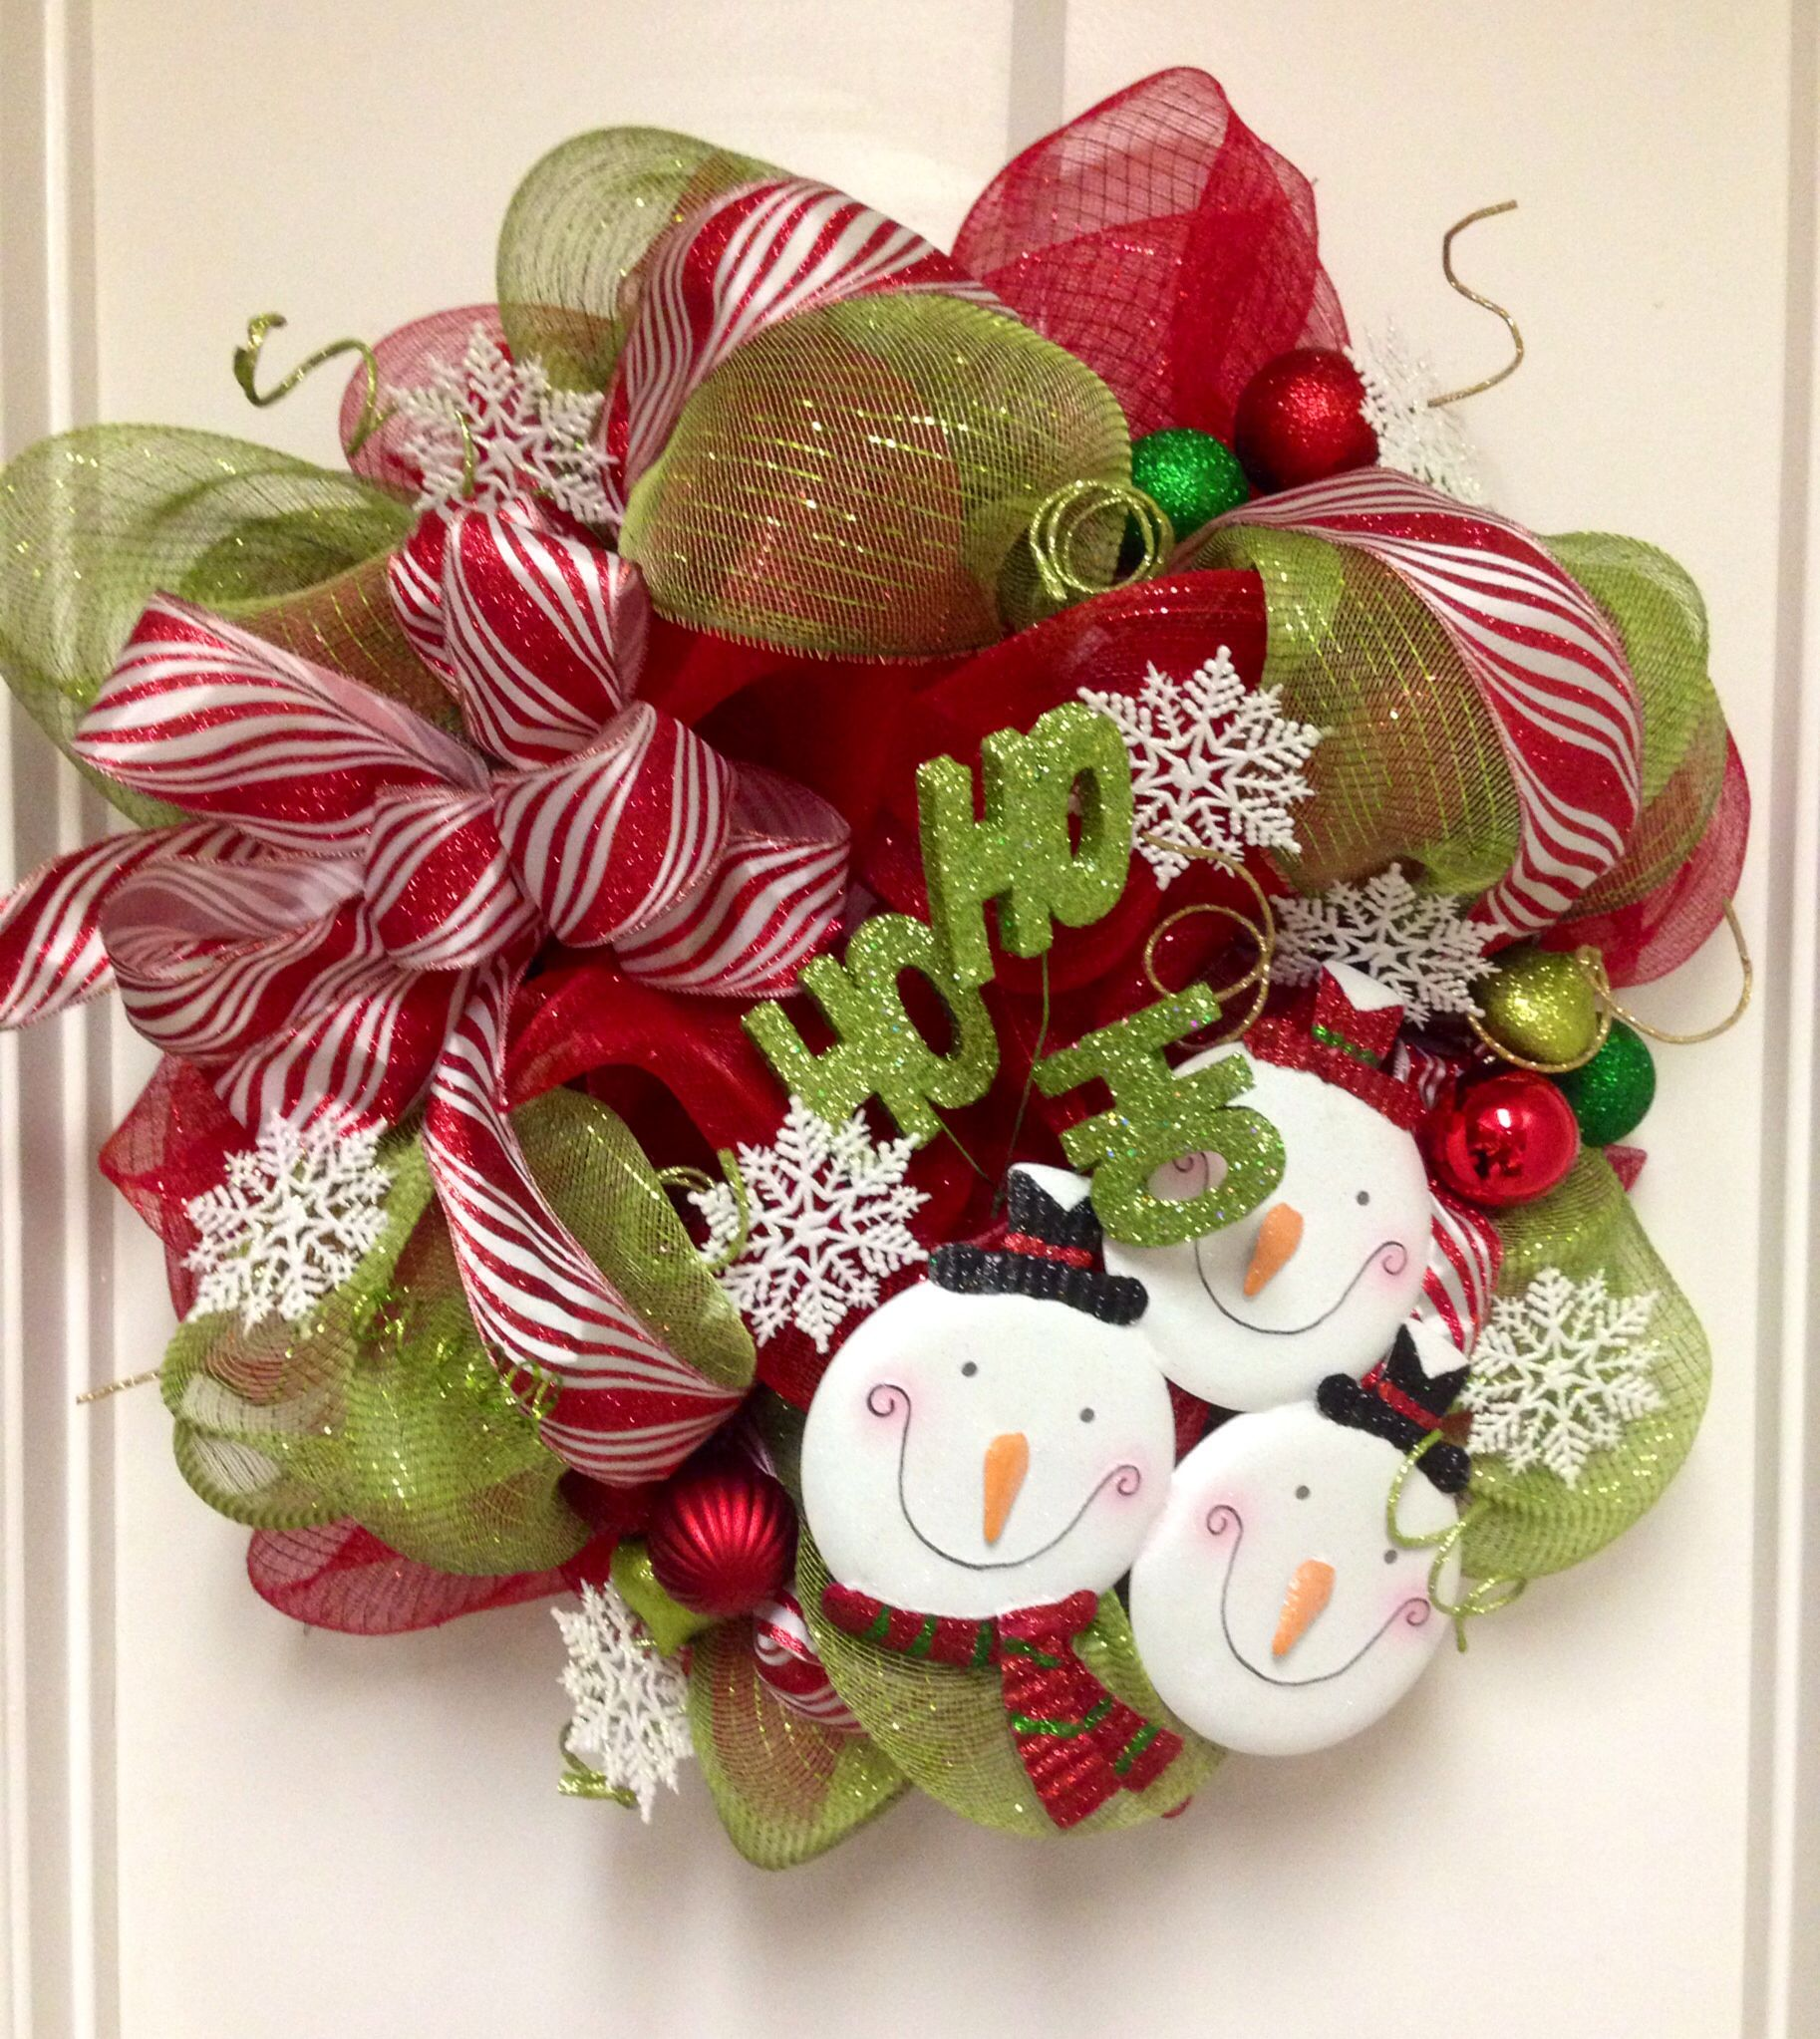 Christmas Christmas Lovechristmas Wreathschristmas Decormerry Christmaschristmas Ideasxmasholiday